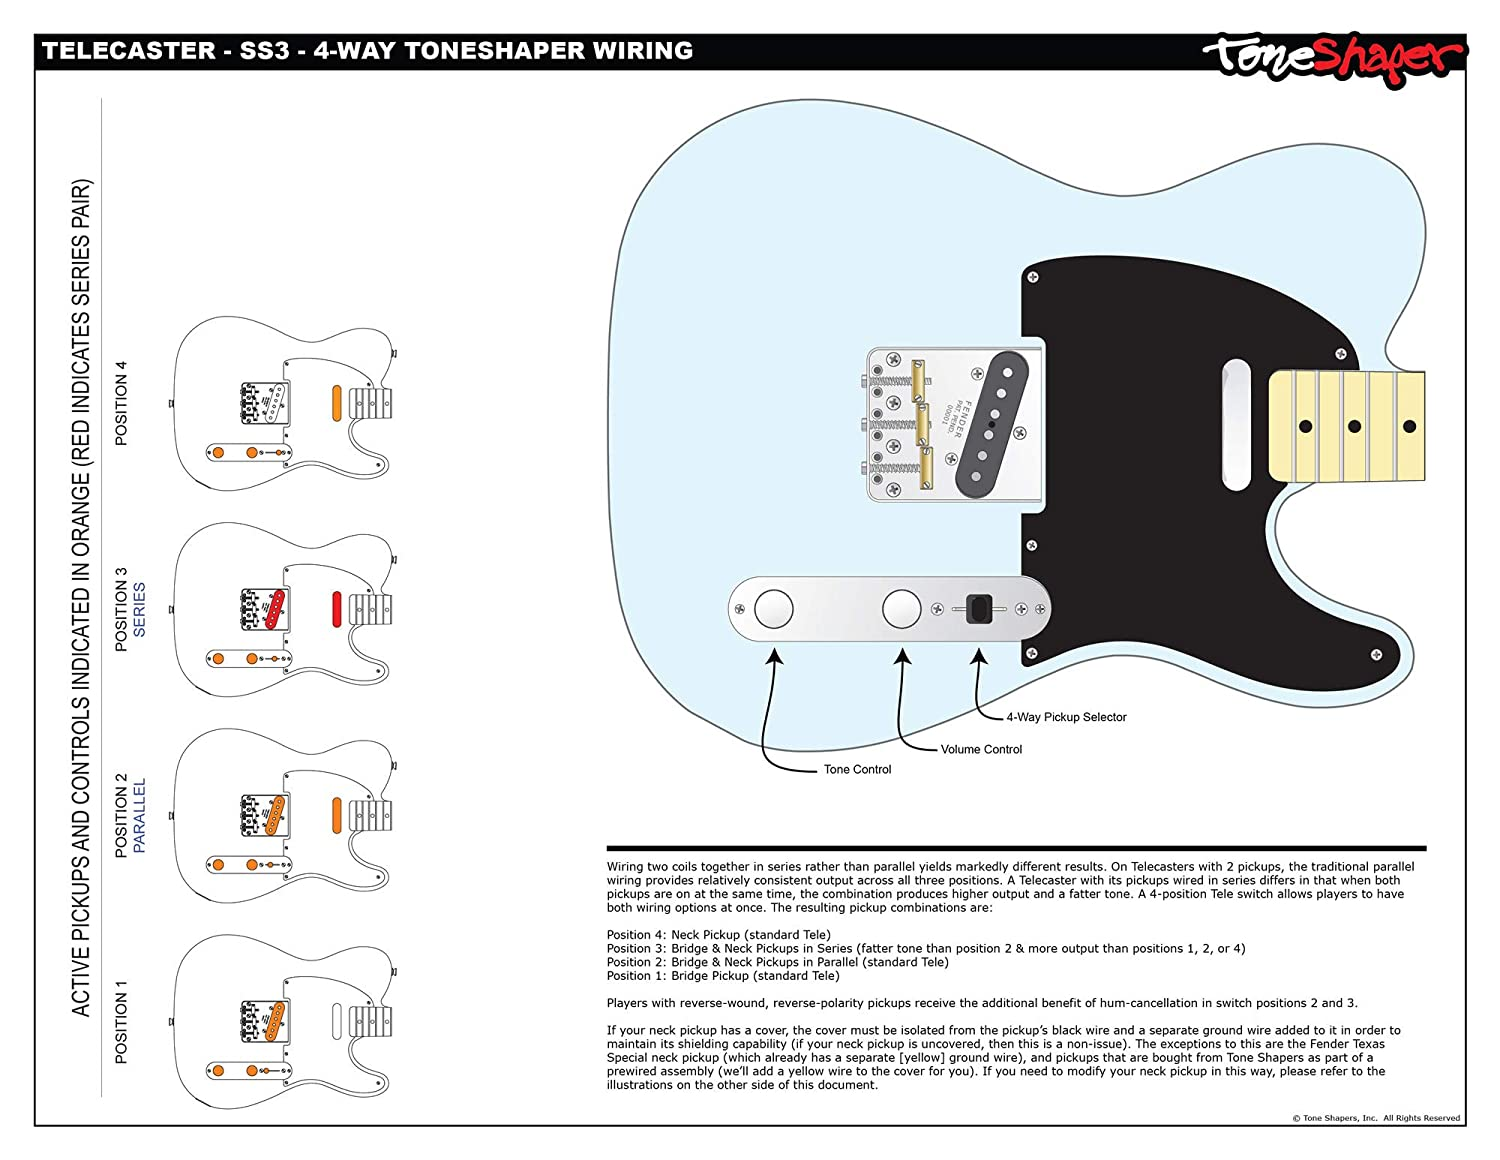 ToneShaper Guitar Wiring Kit, For Fender Telecaster, SS3 (4-Way ToneShaper on fender squier stratocaster wiring-diagram, typical 3-way switch diagram, fender telecaster custom wiring diagram, fender guitar wiring diagrams, fender telecaster pickup wiring diagrams, telecaster texas special wiring diagram, fender p-bass wiring diagram, fender strat wiring diagram, fender 5 way tele switch wiring, 3 position toggle switch diagram, fender 4-way switch wiring, fender super switch wiring diagram,